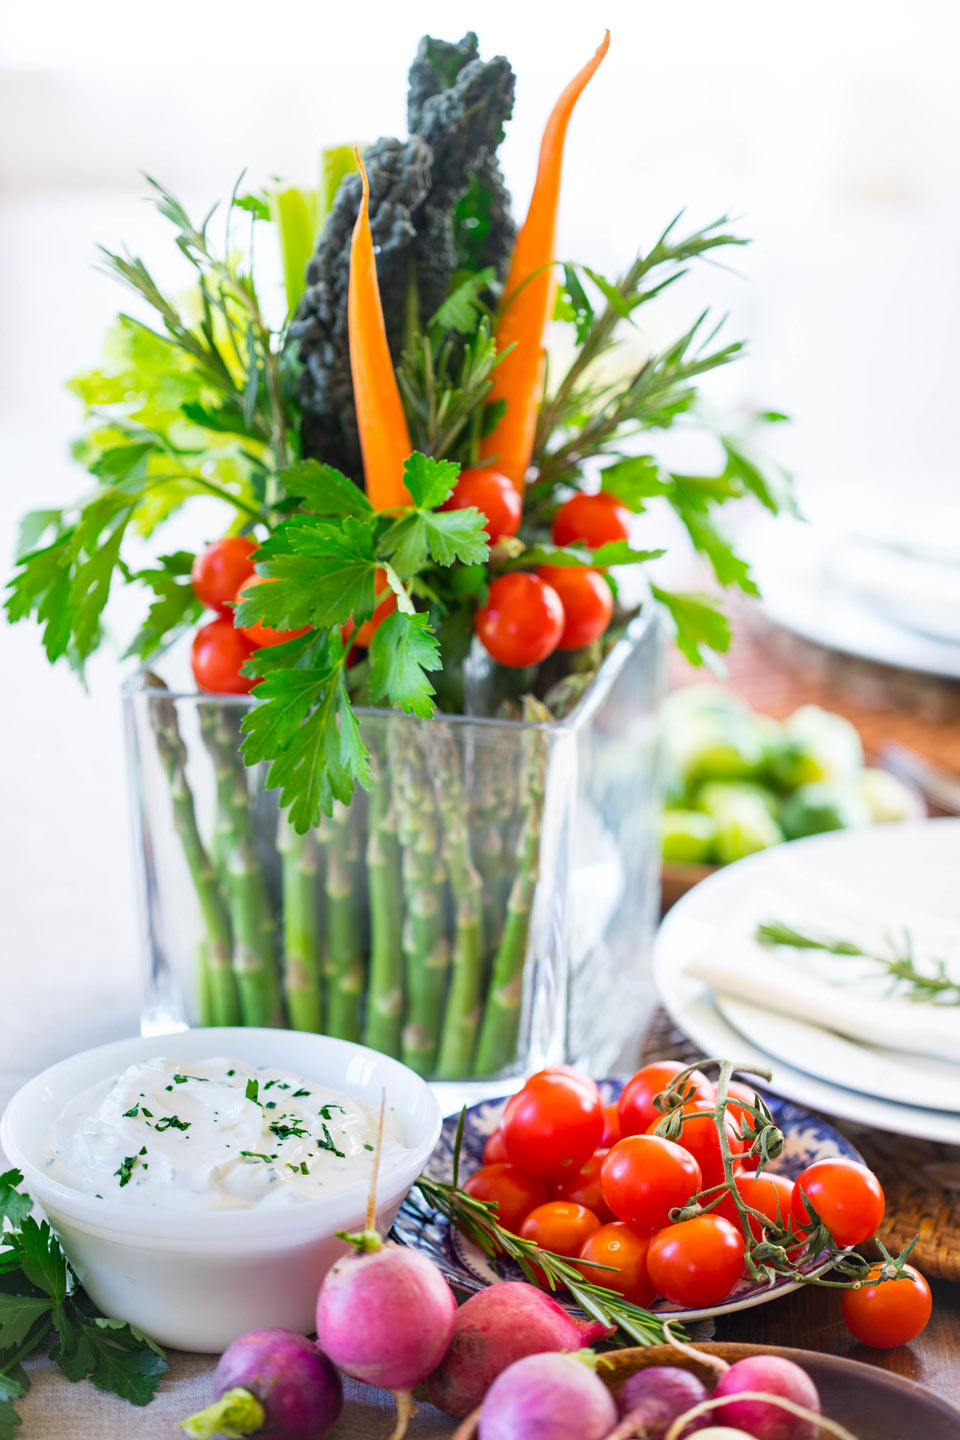 Decorate the tablescape with more vegetables and your favorite dip